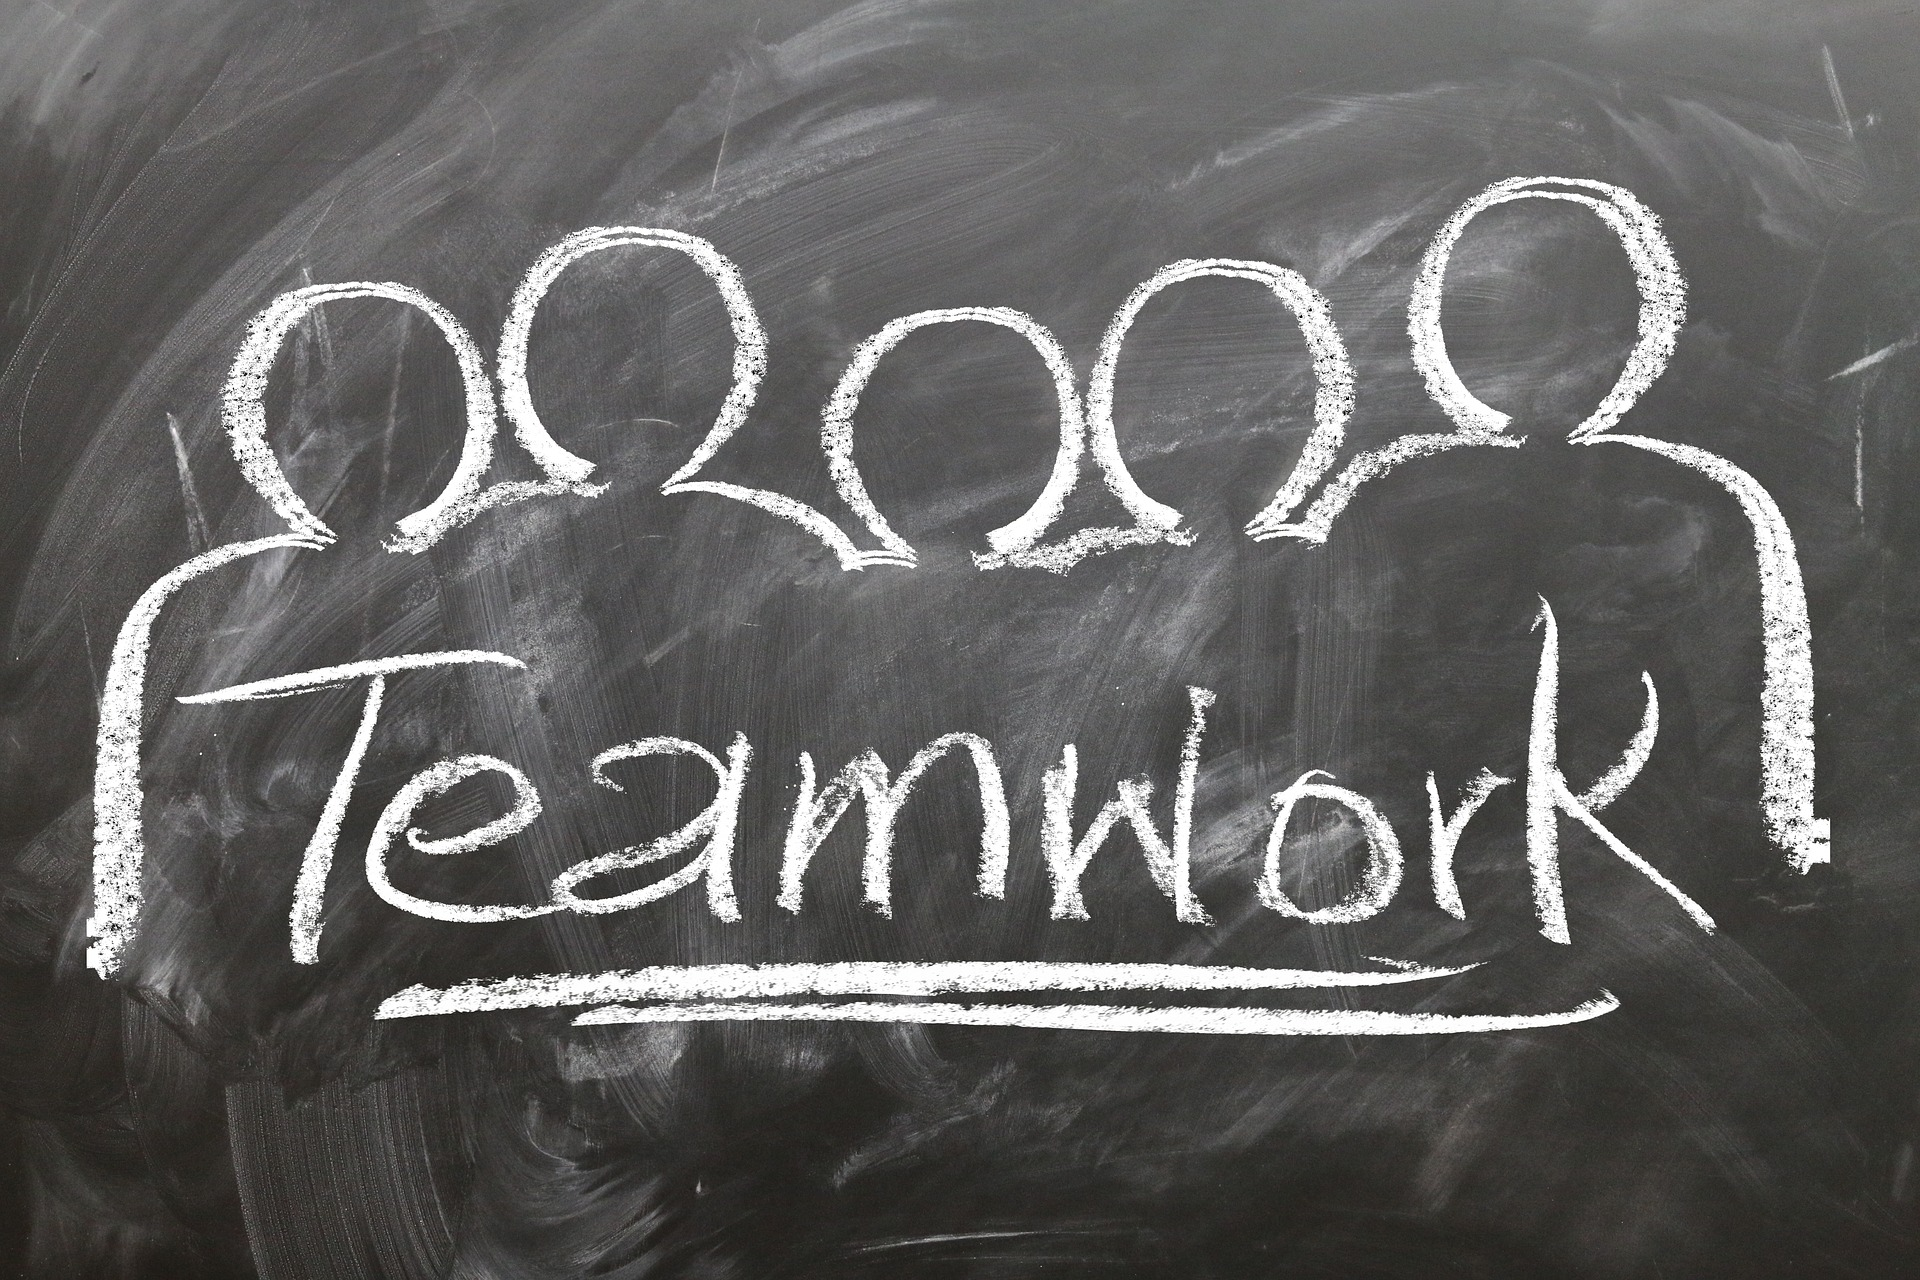 account-based-marketing-smarketing-teamwork